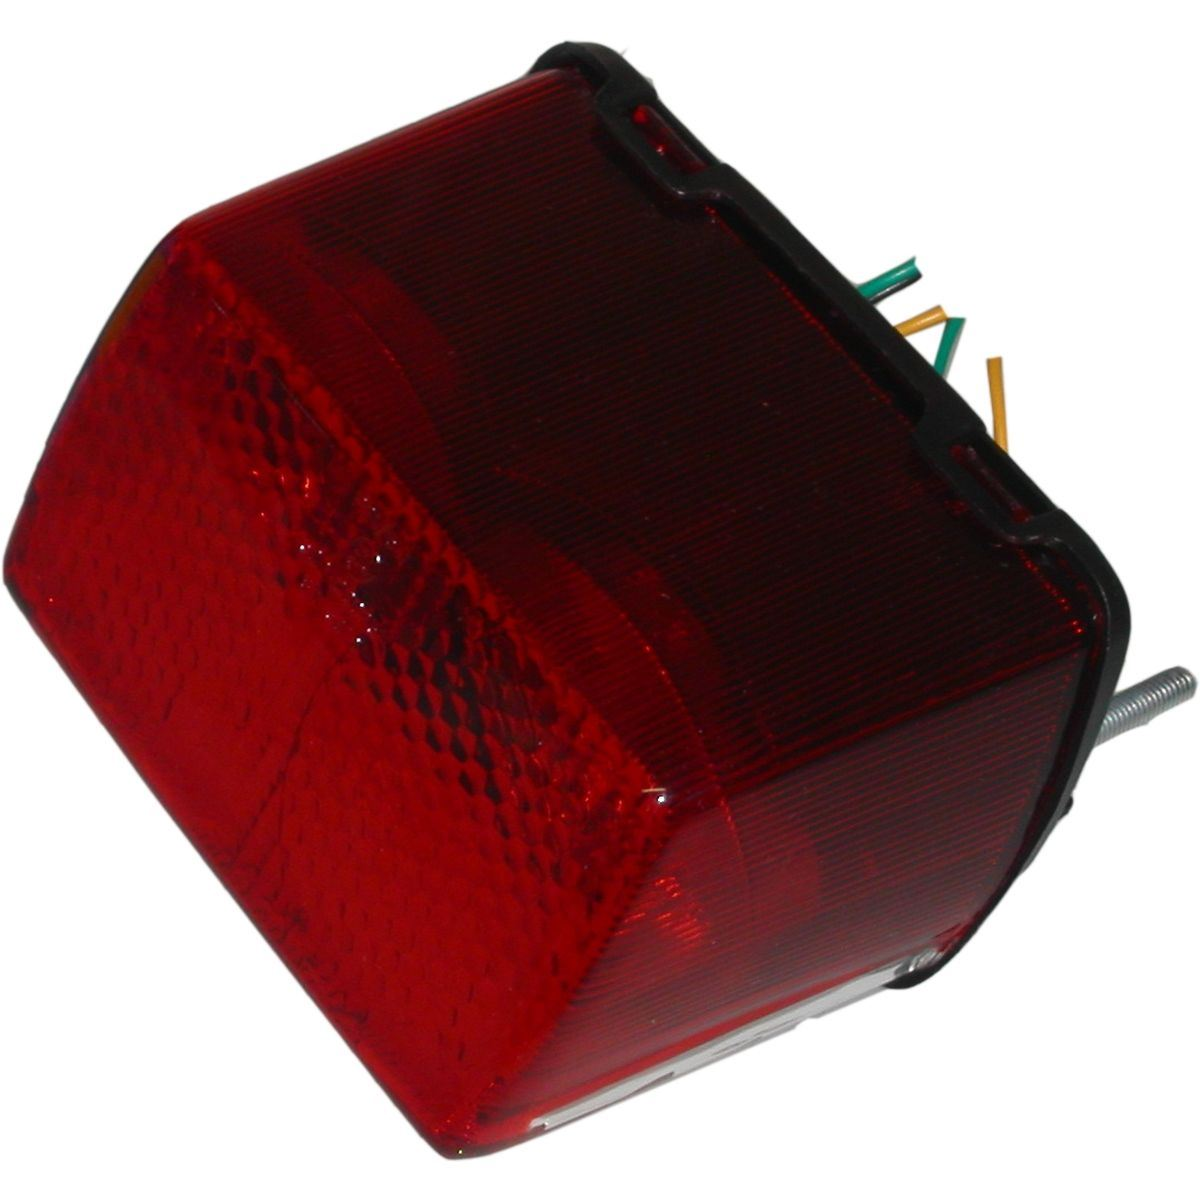 Details about Taillight Complete for 1987 Yamaha RD 350 FII YPVS (Fully  Faired)